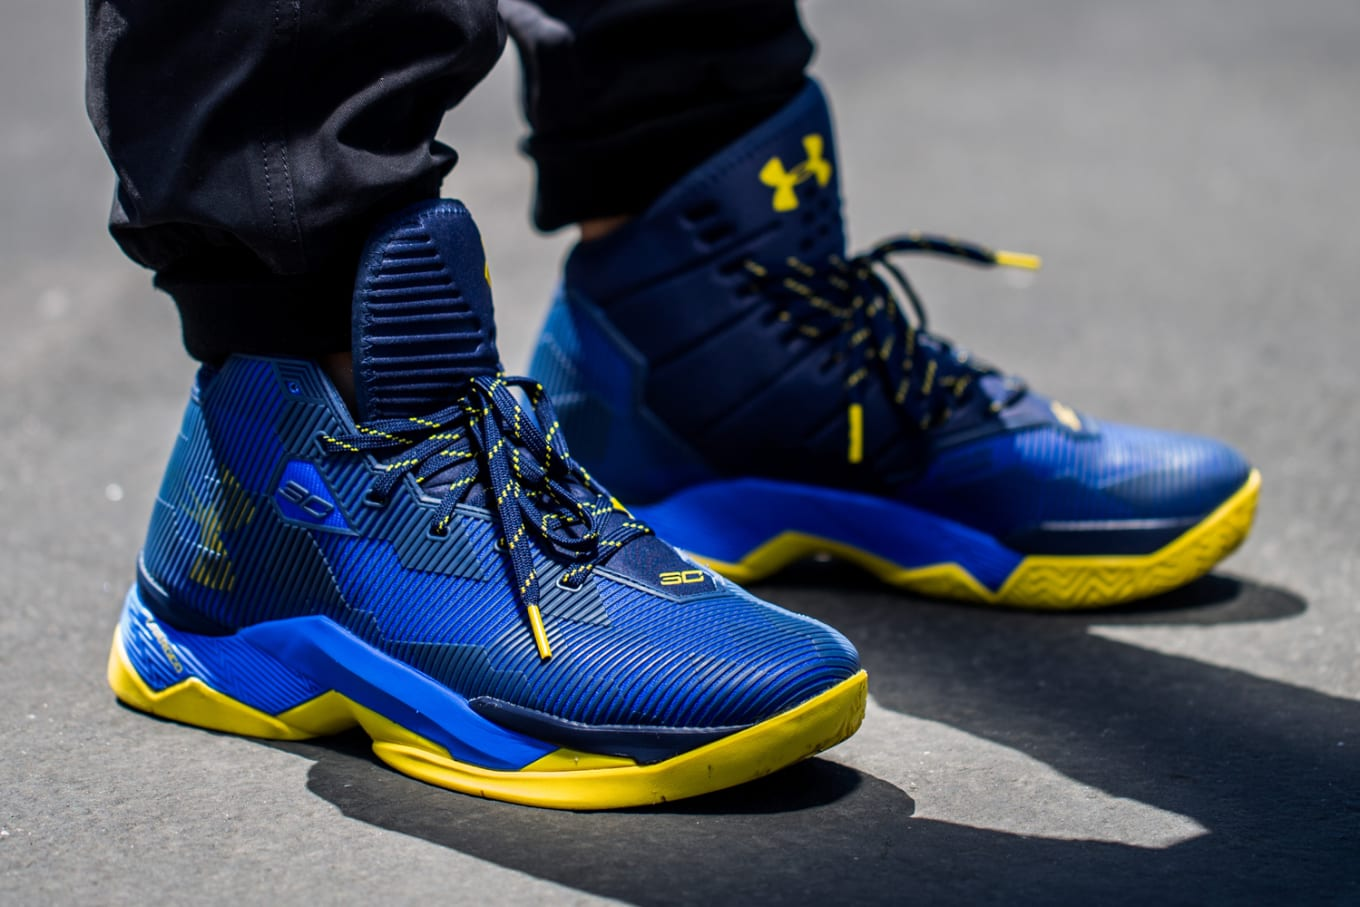 fcf9cf18a83da Under Armour Made These Shoes for Dub Nation. The latest pair of Steph Curry's  2.5s.